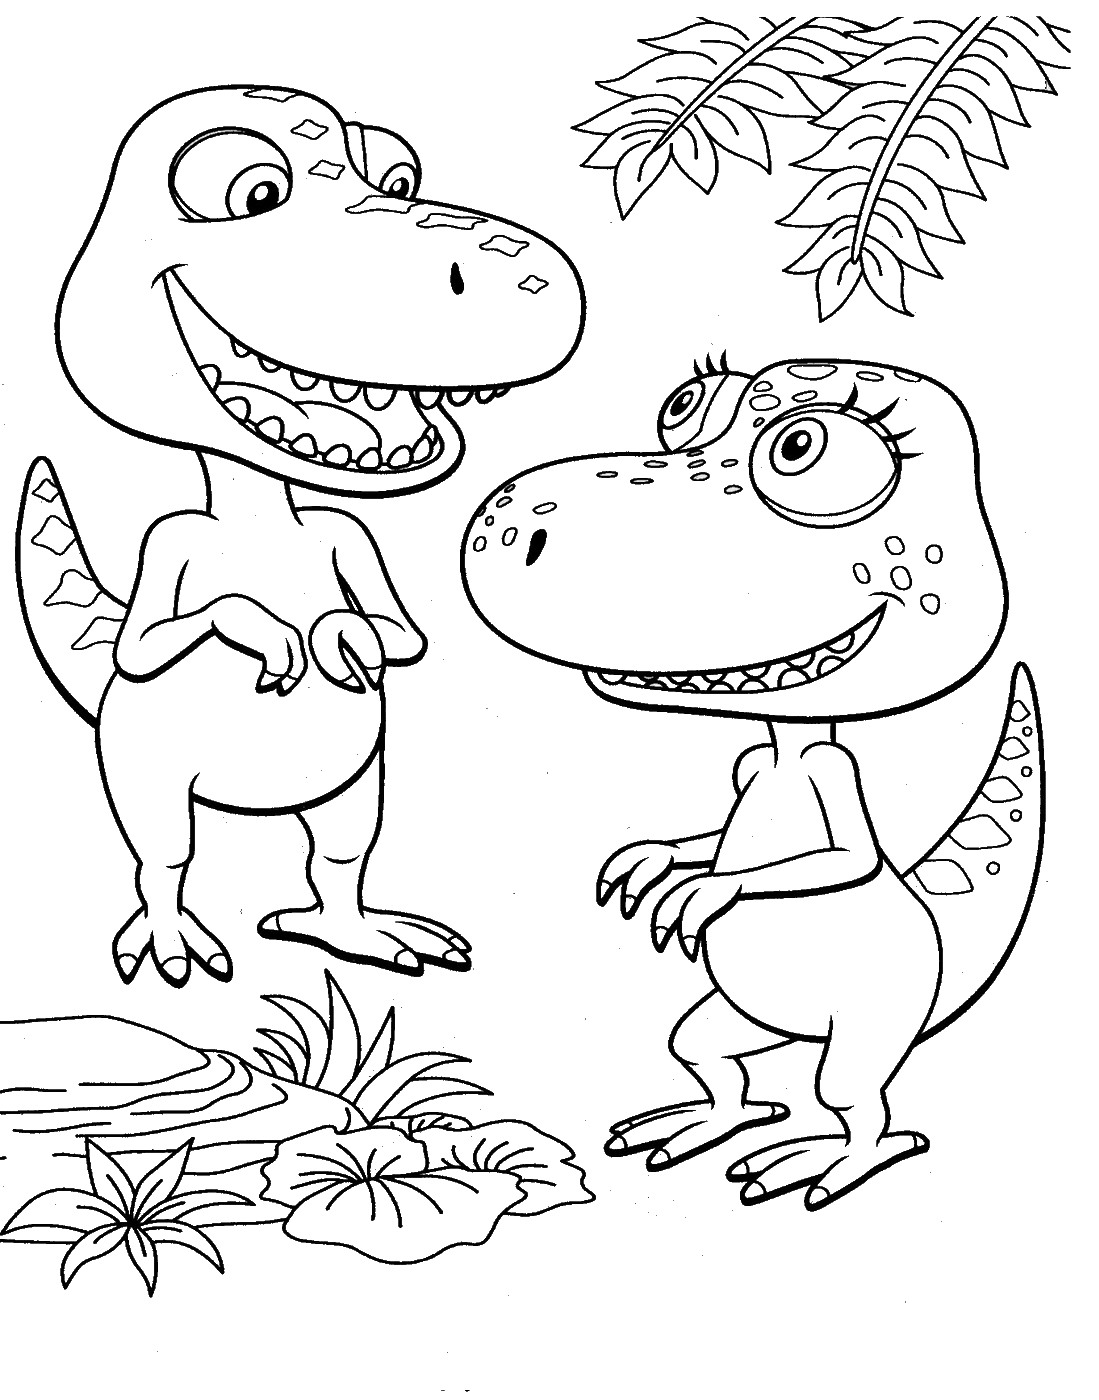 colouring dinosaur pictures dinosaur colouring pages in the playroom pictures colouring dinosaur